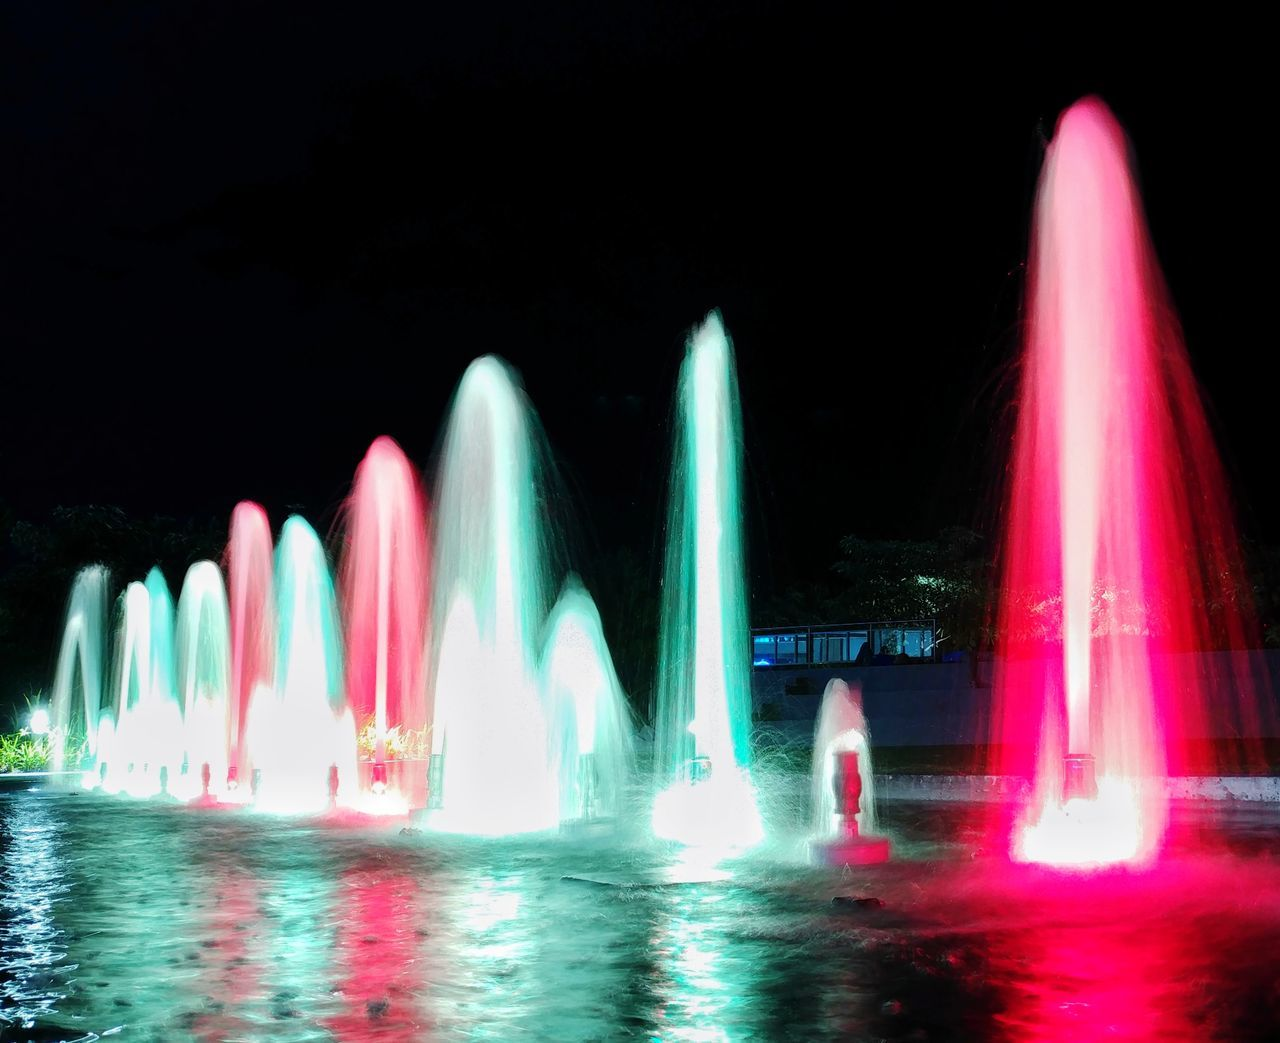 night, long exposure, illuminated, water, motion, speed, outdoors, no people, arts culture and entertainment, multi colored